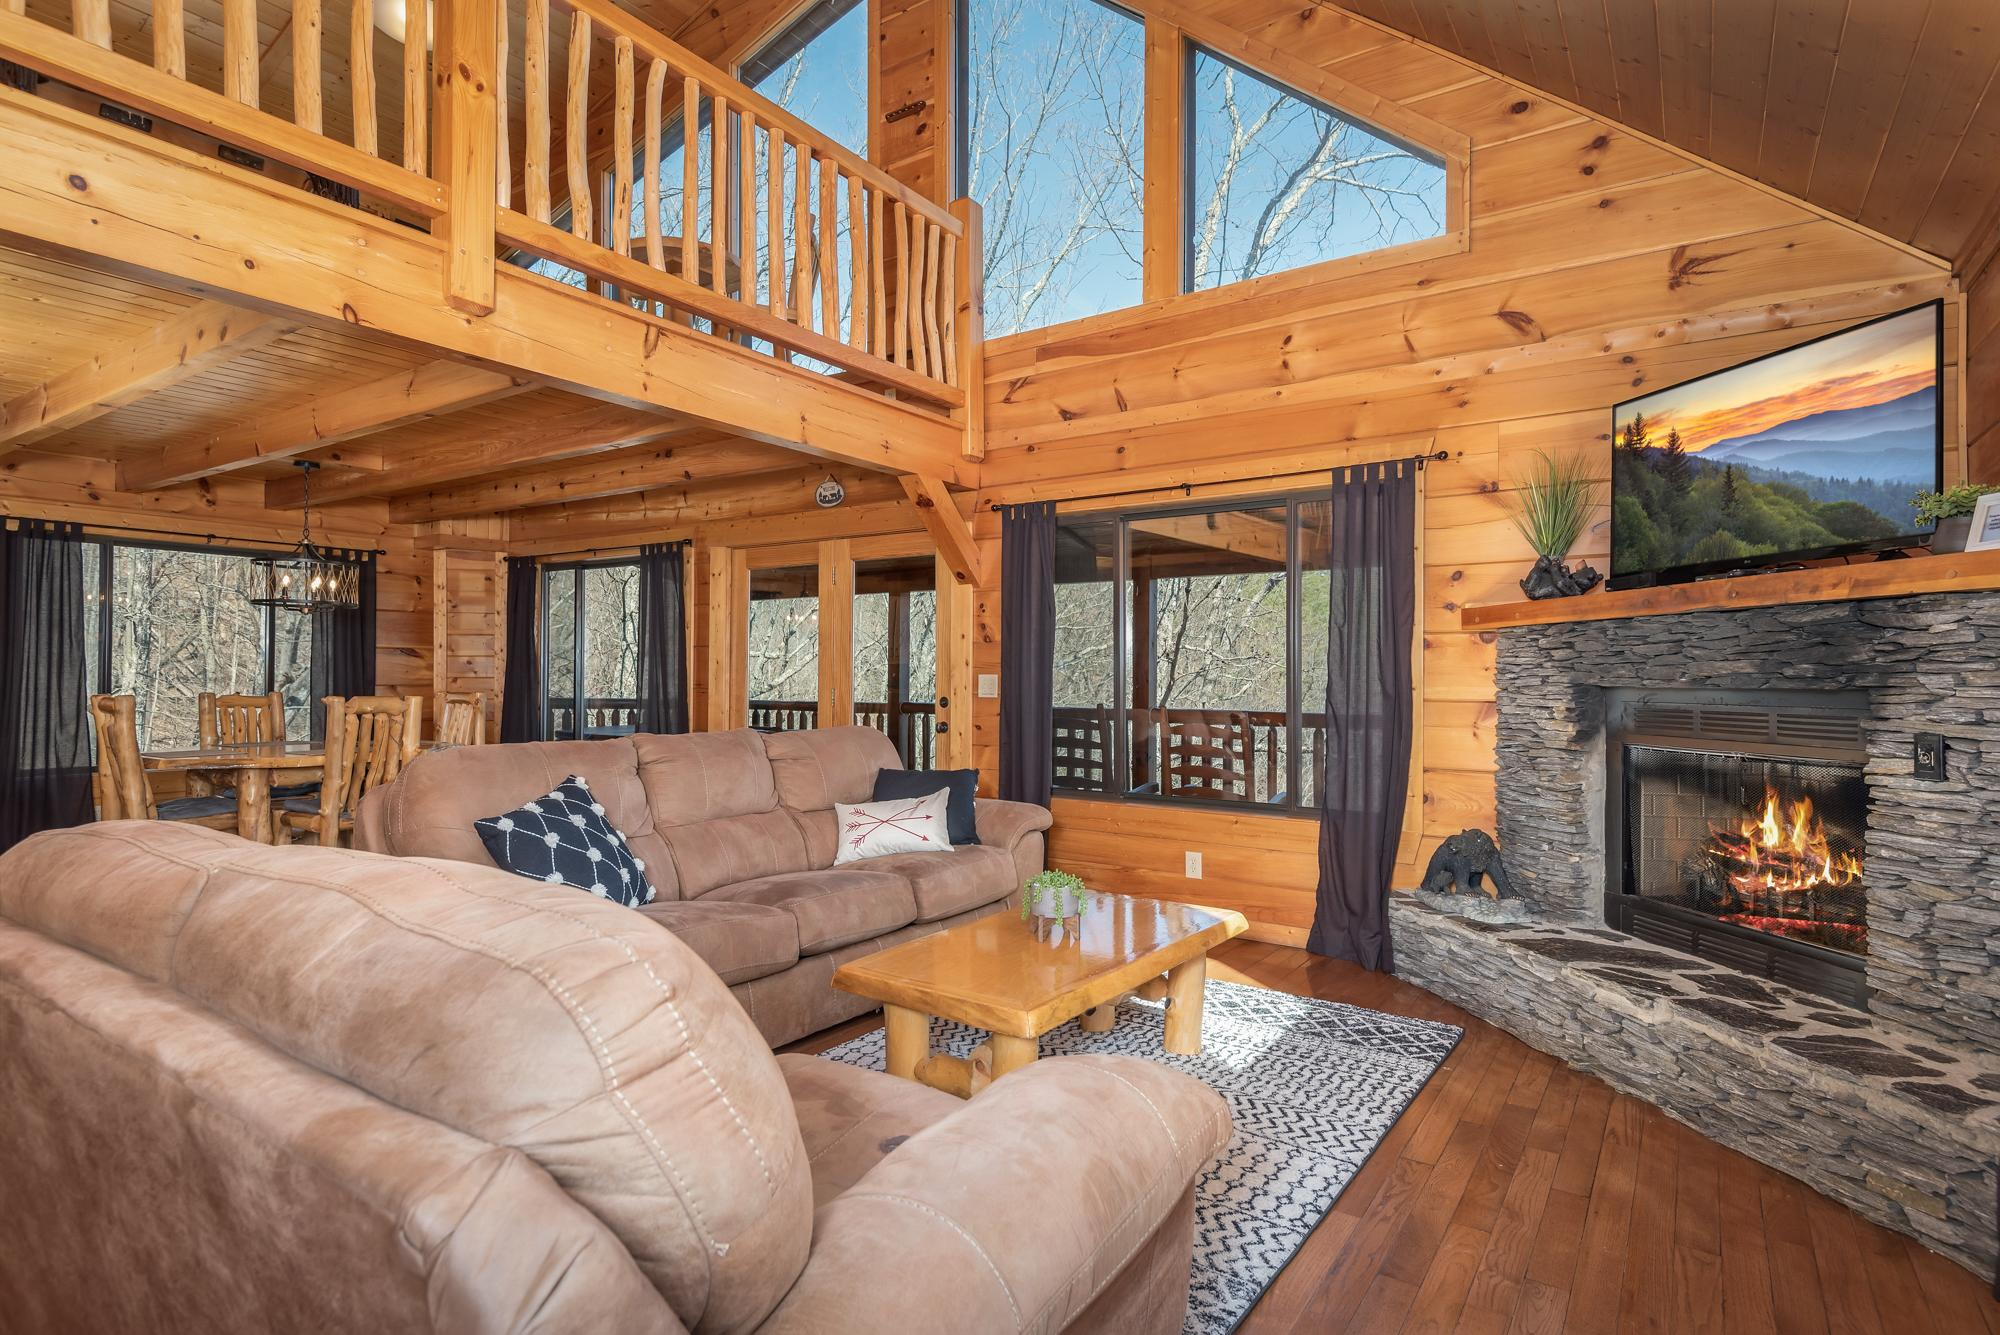 Property Image 1 - Blissful Getaway with Hot Tub and Smoky Mountain Views